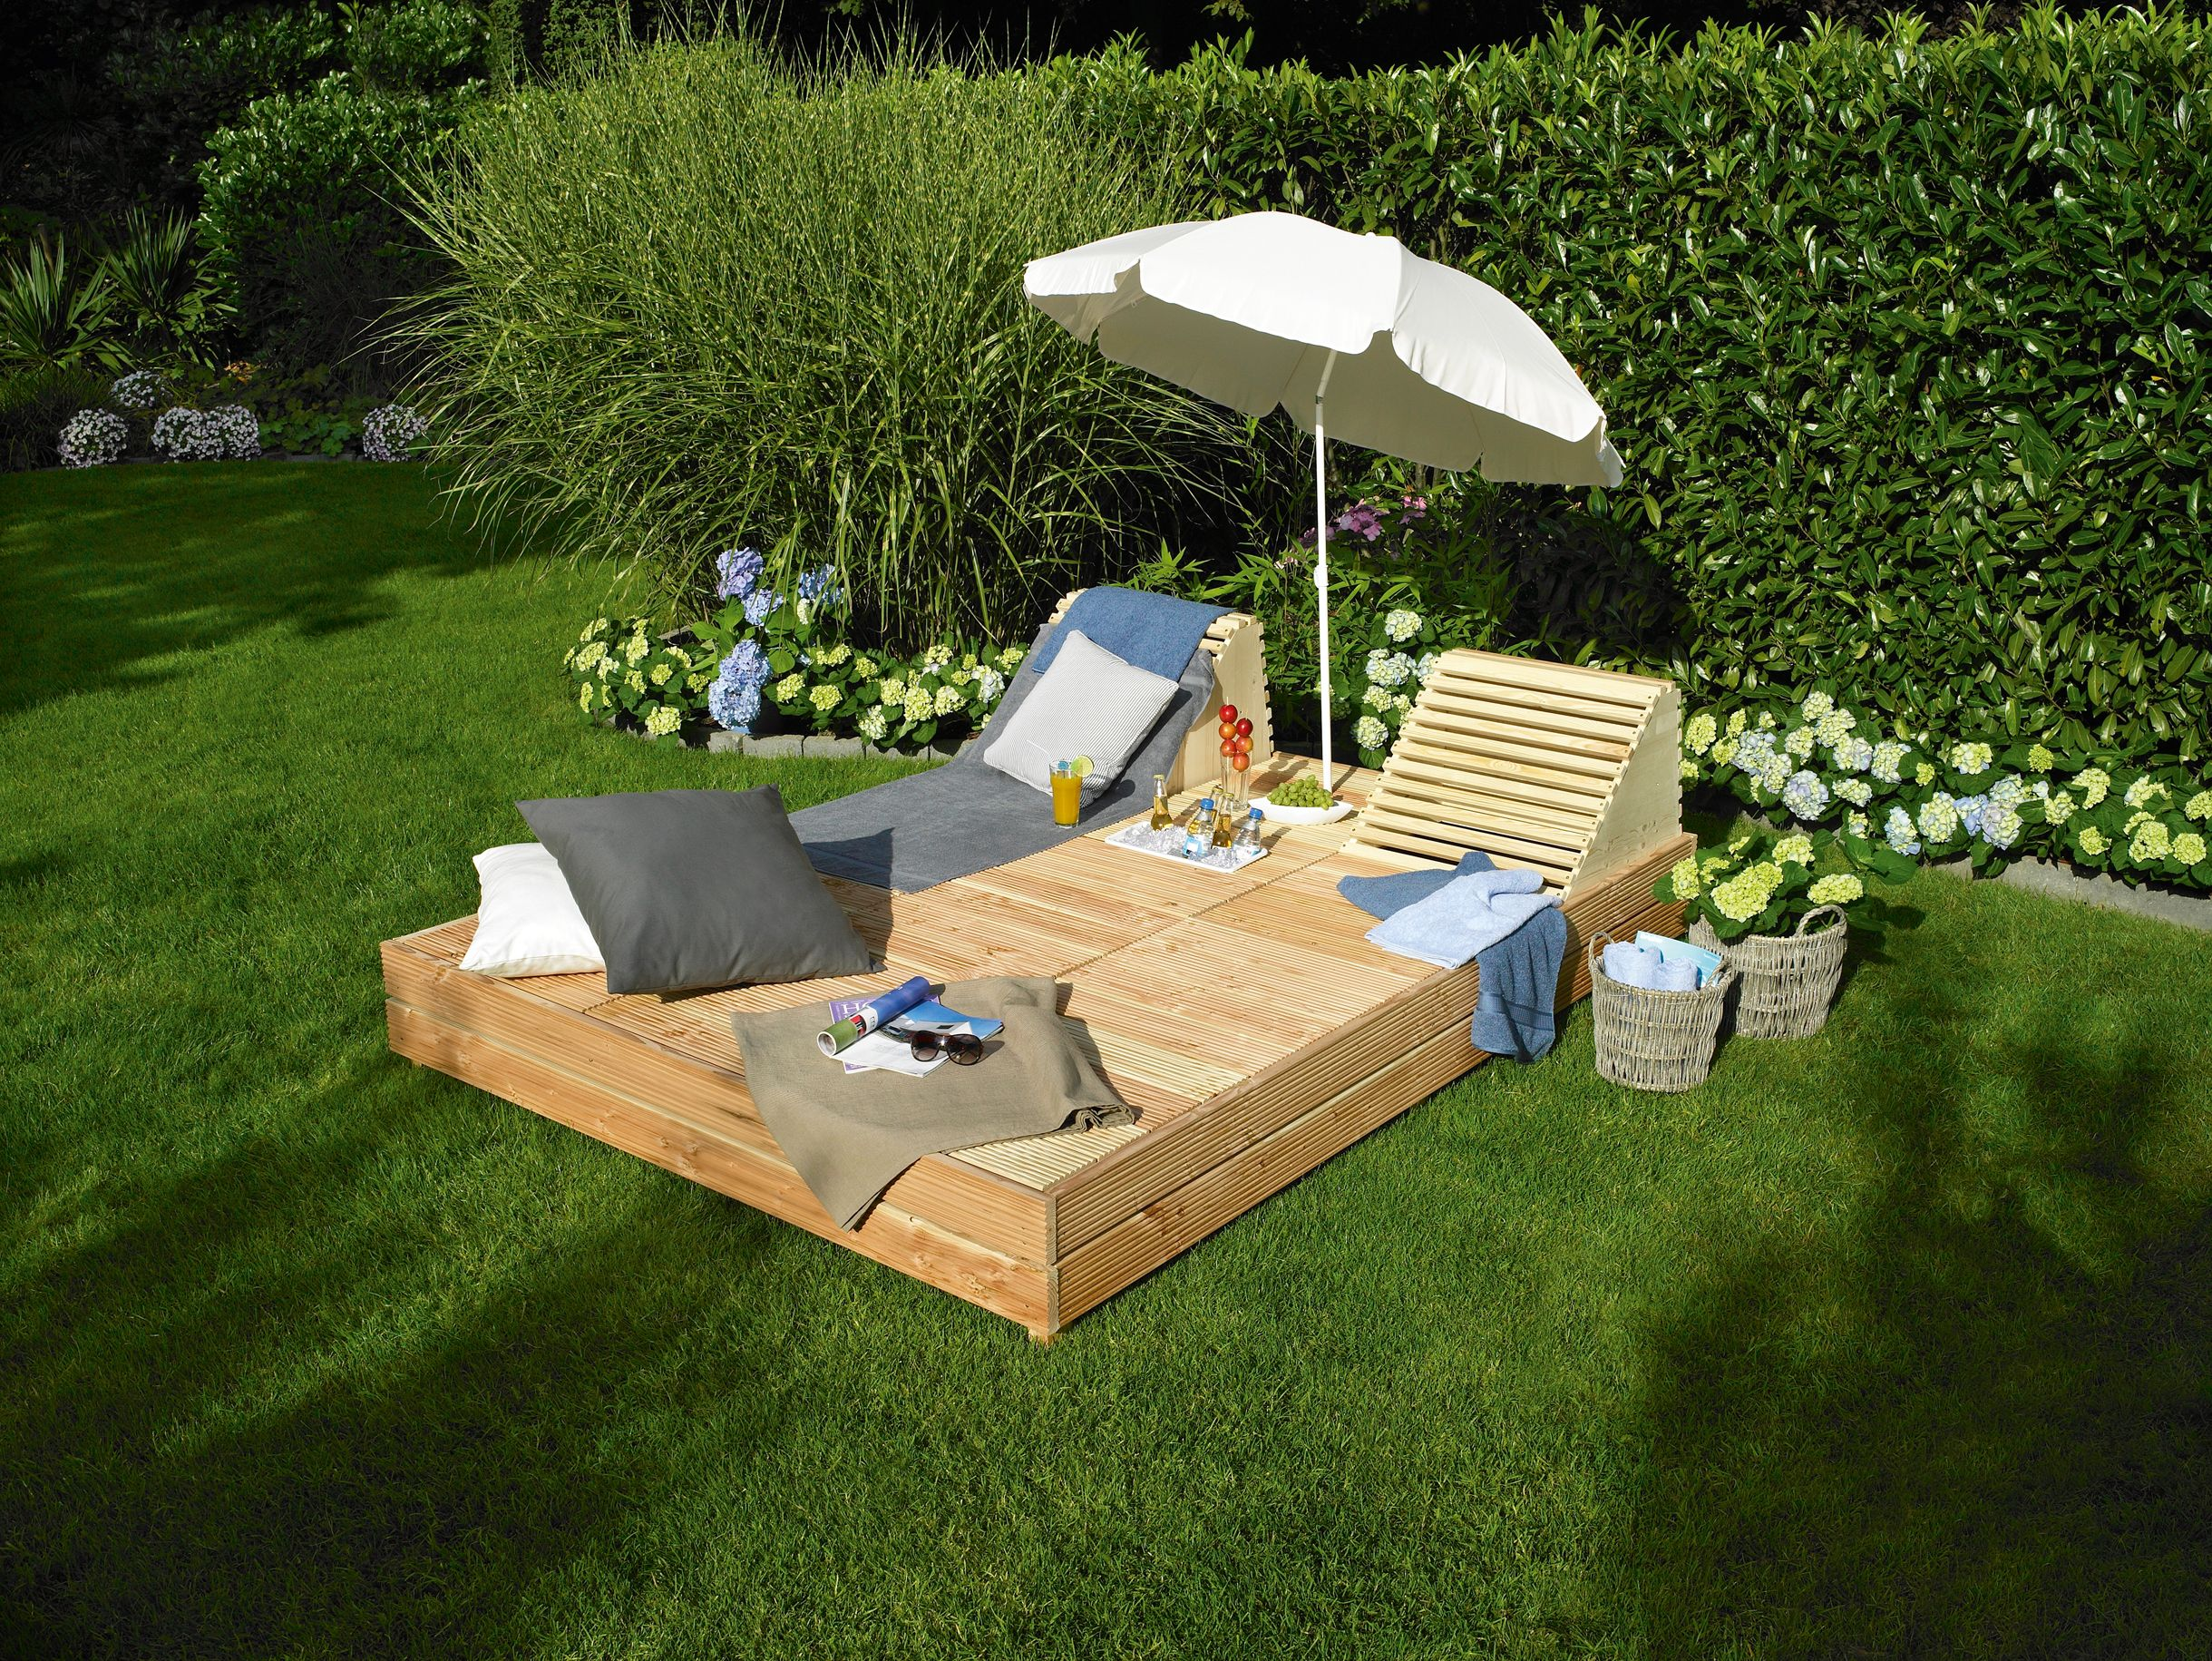 Toom Baumarkt Gartenliege Sonnendeck Diy Garden Furniture Diy Garden Outdoor Furniture Design